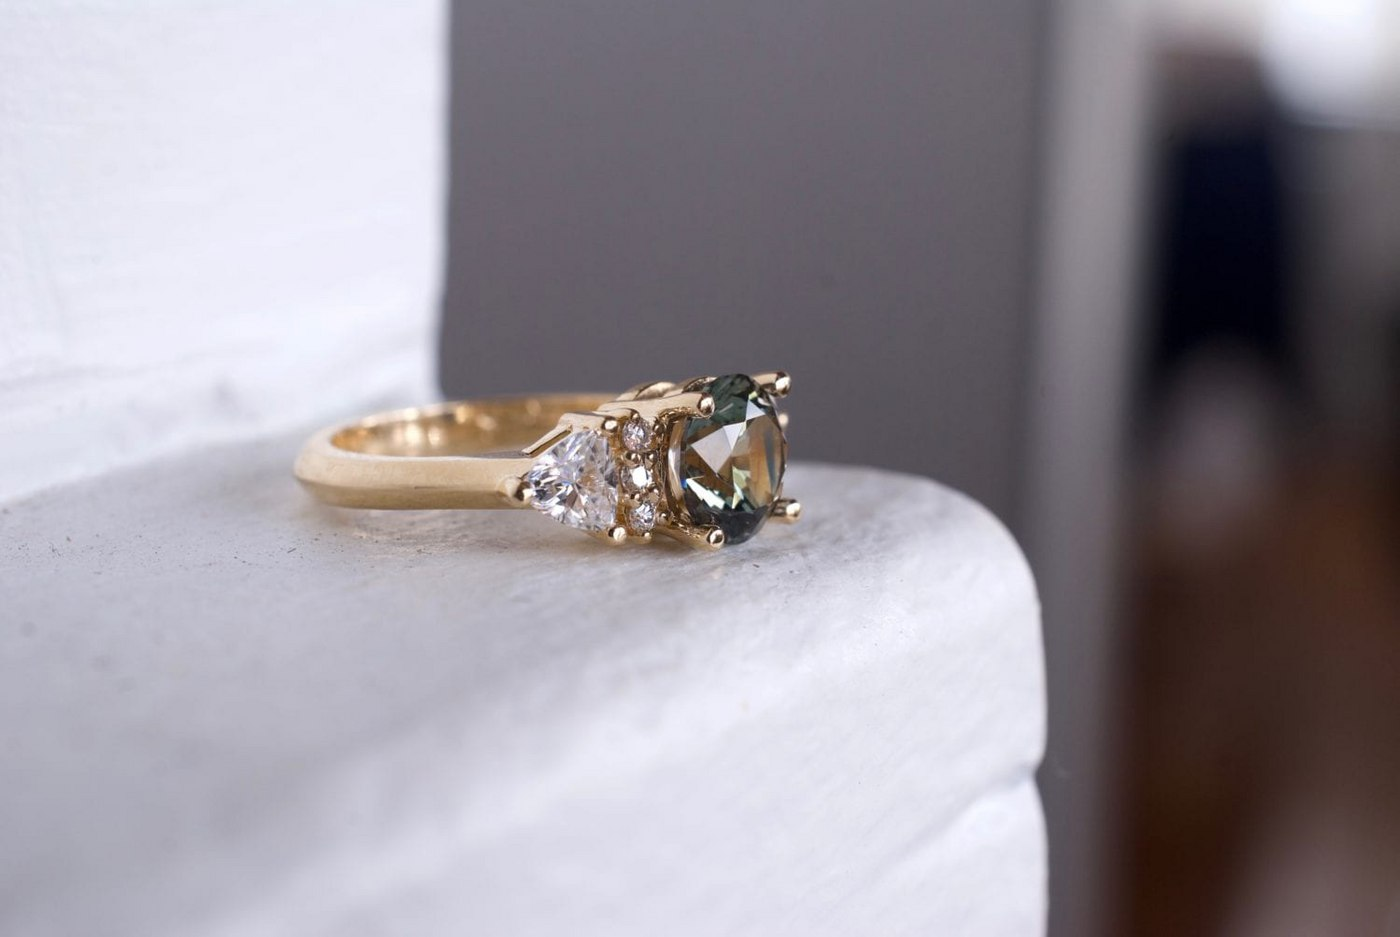 Sustainable and Ethical Engagement Rings: What Are They?